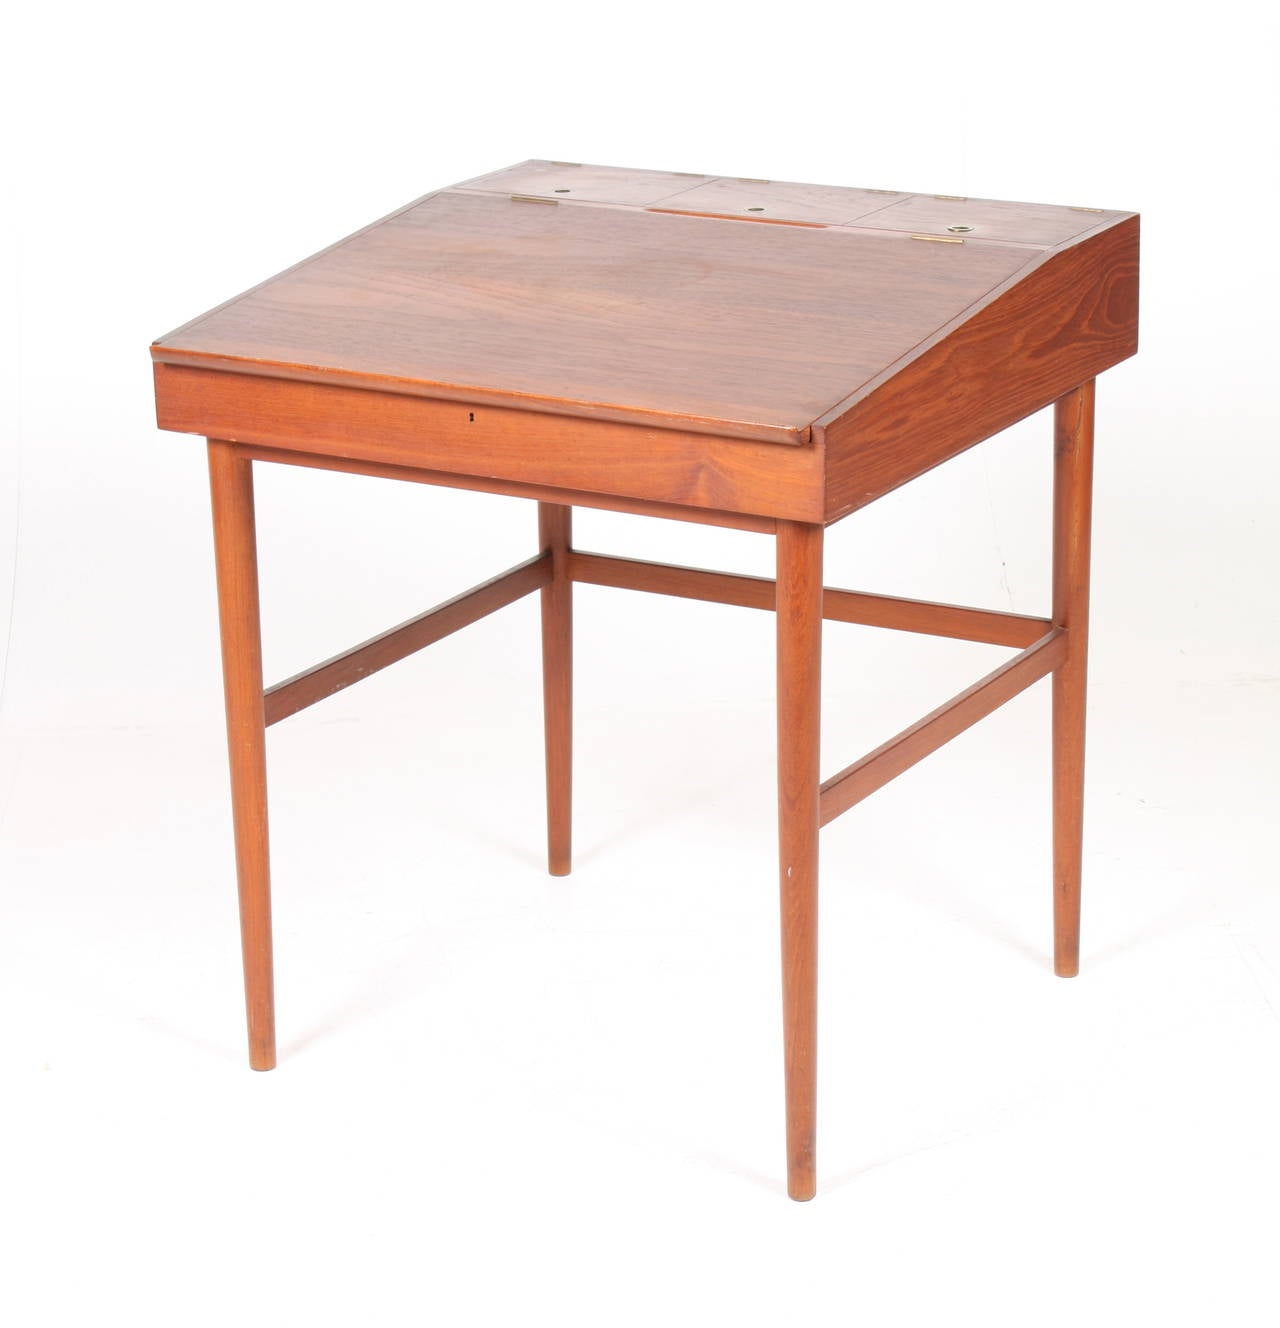 NV40 Writing desk - designed by Finn Juhl - Made by Niels Vodder - Teak with hardware in brass -   Great original condition - Denmark 1950's